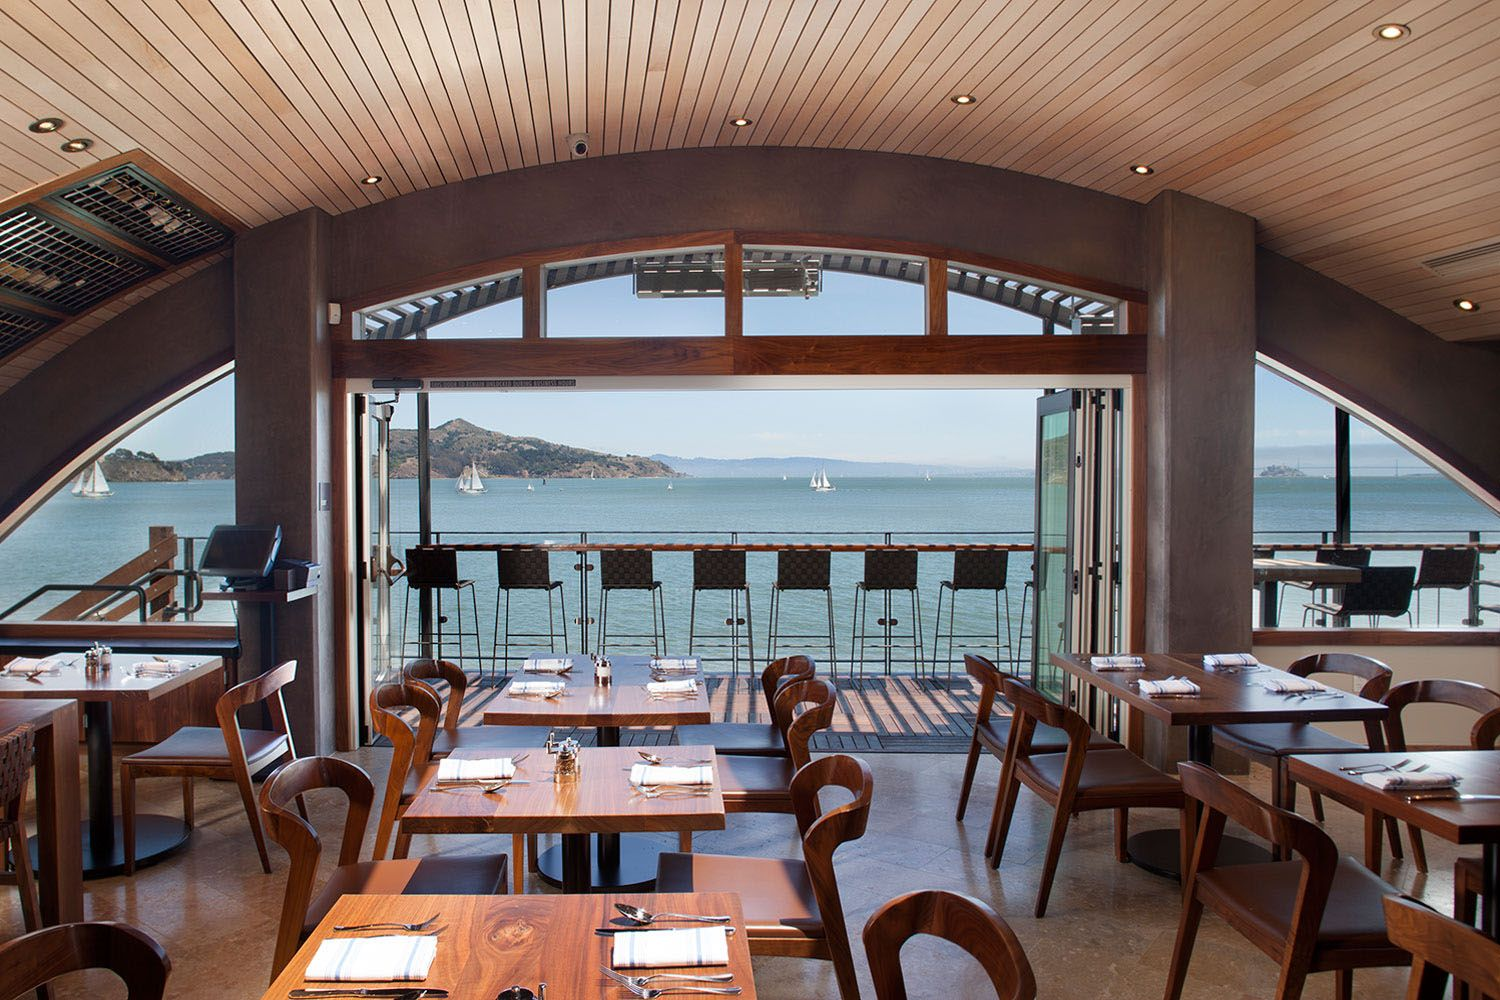 Barrel House Tavern   Sausalito, California, San Francisco Bay Area